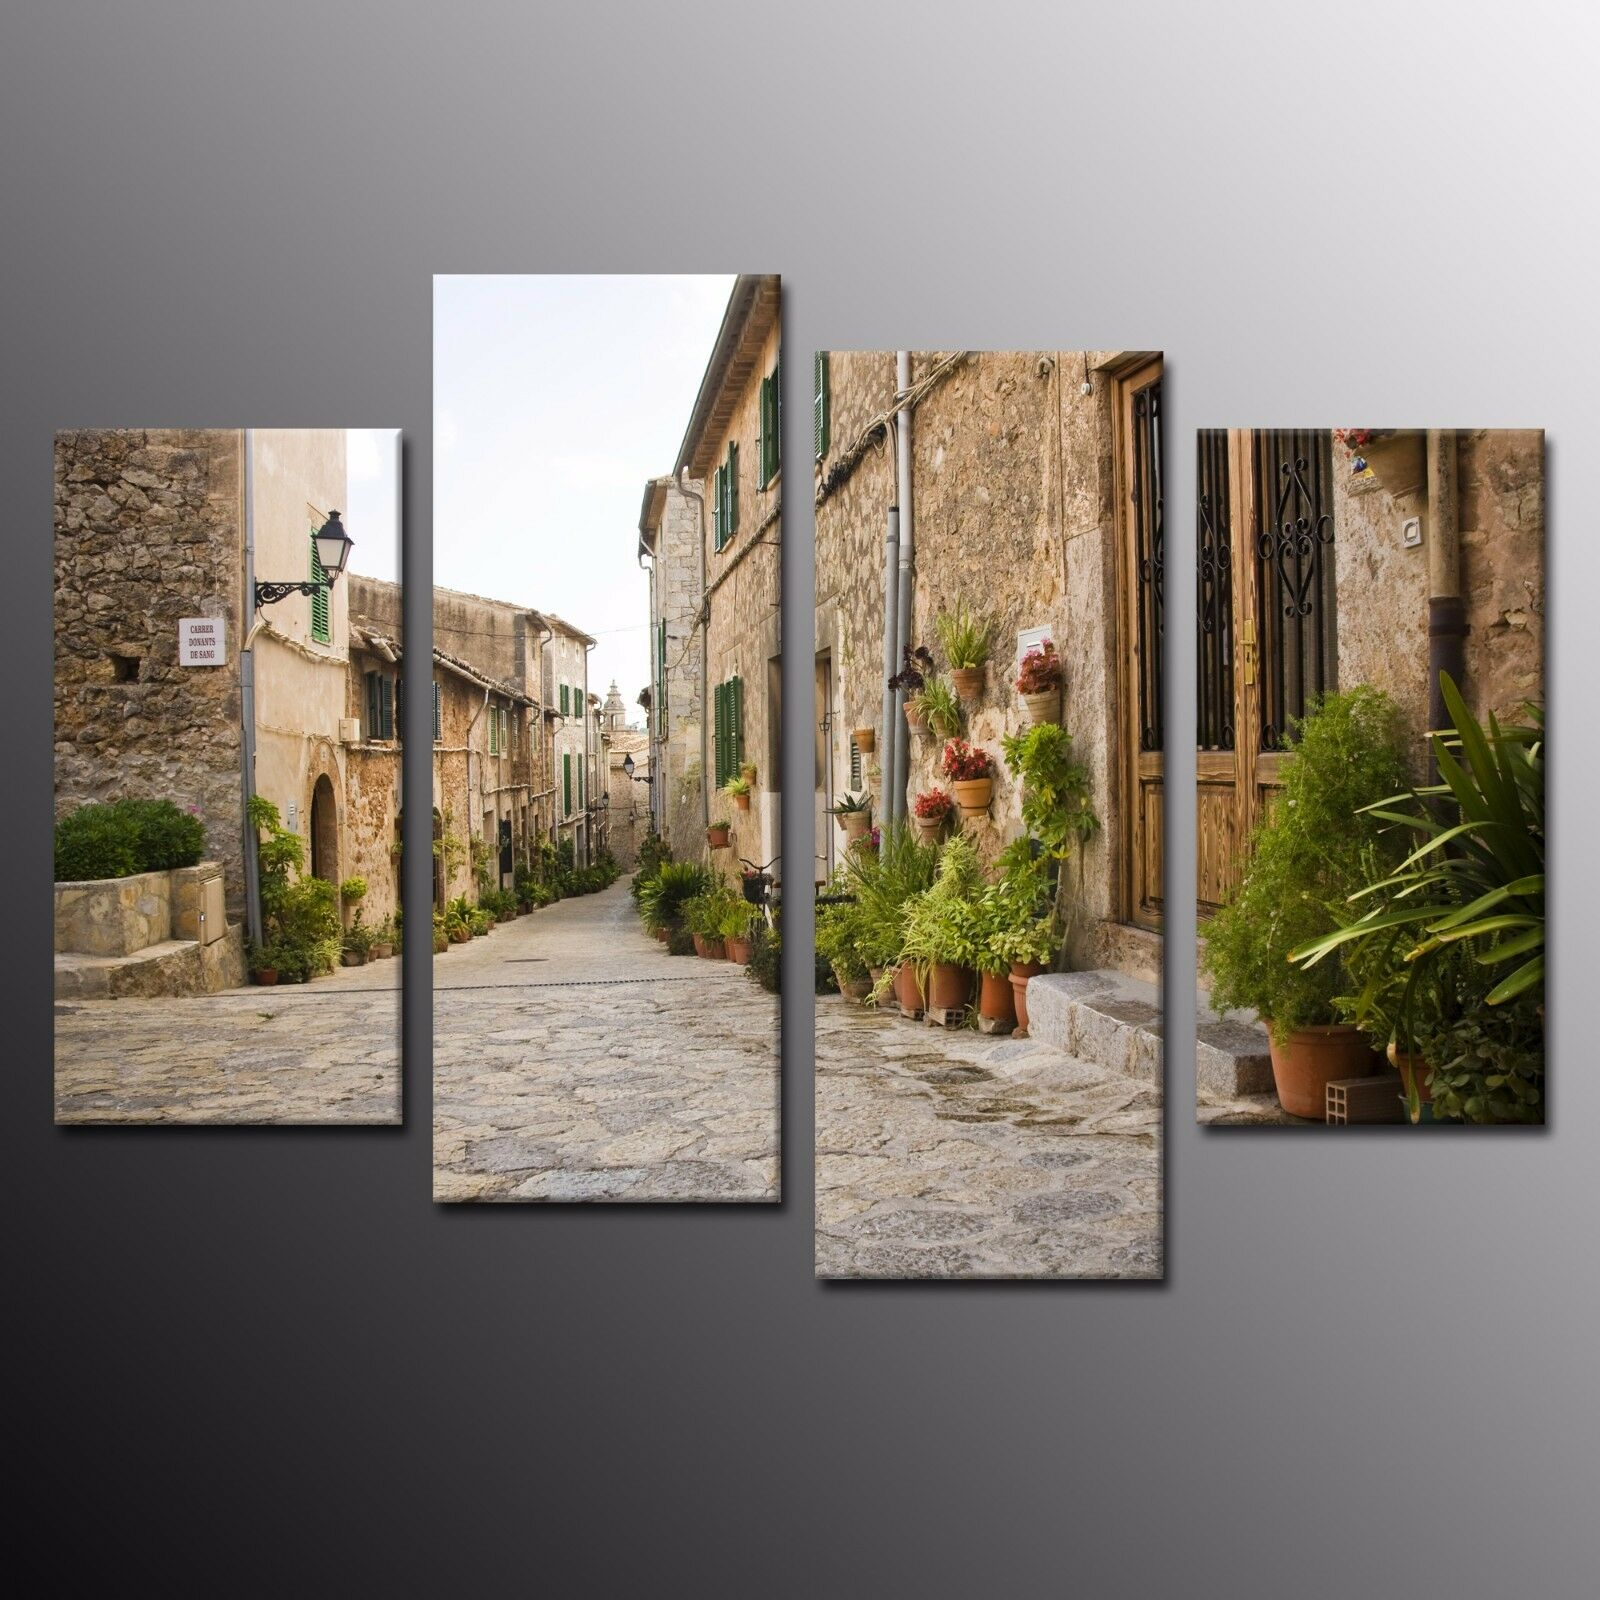 FRAMED Modern Wall Art accueil Decor Alley Photo toile impressions Ready to Hang-4pcs